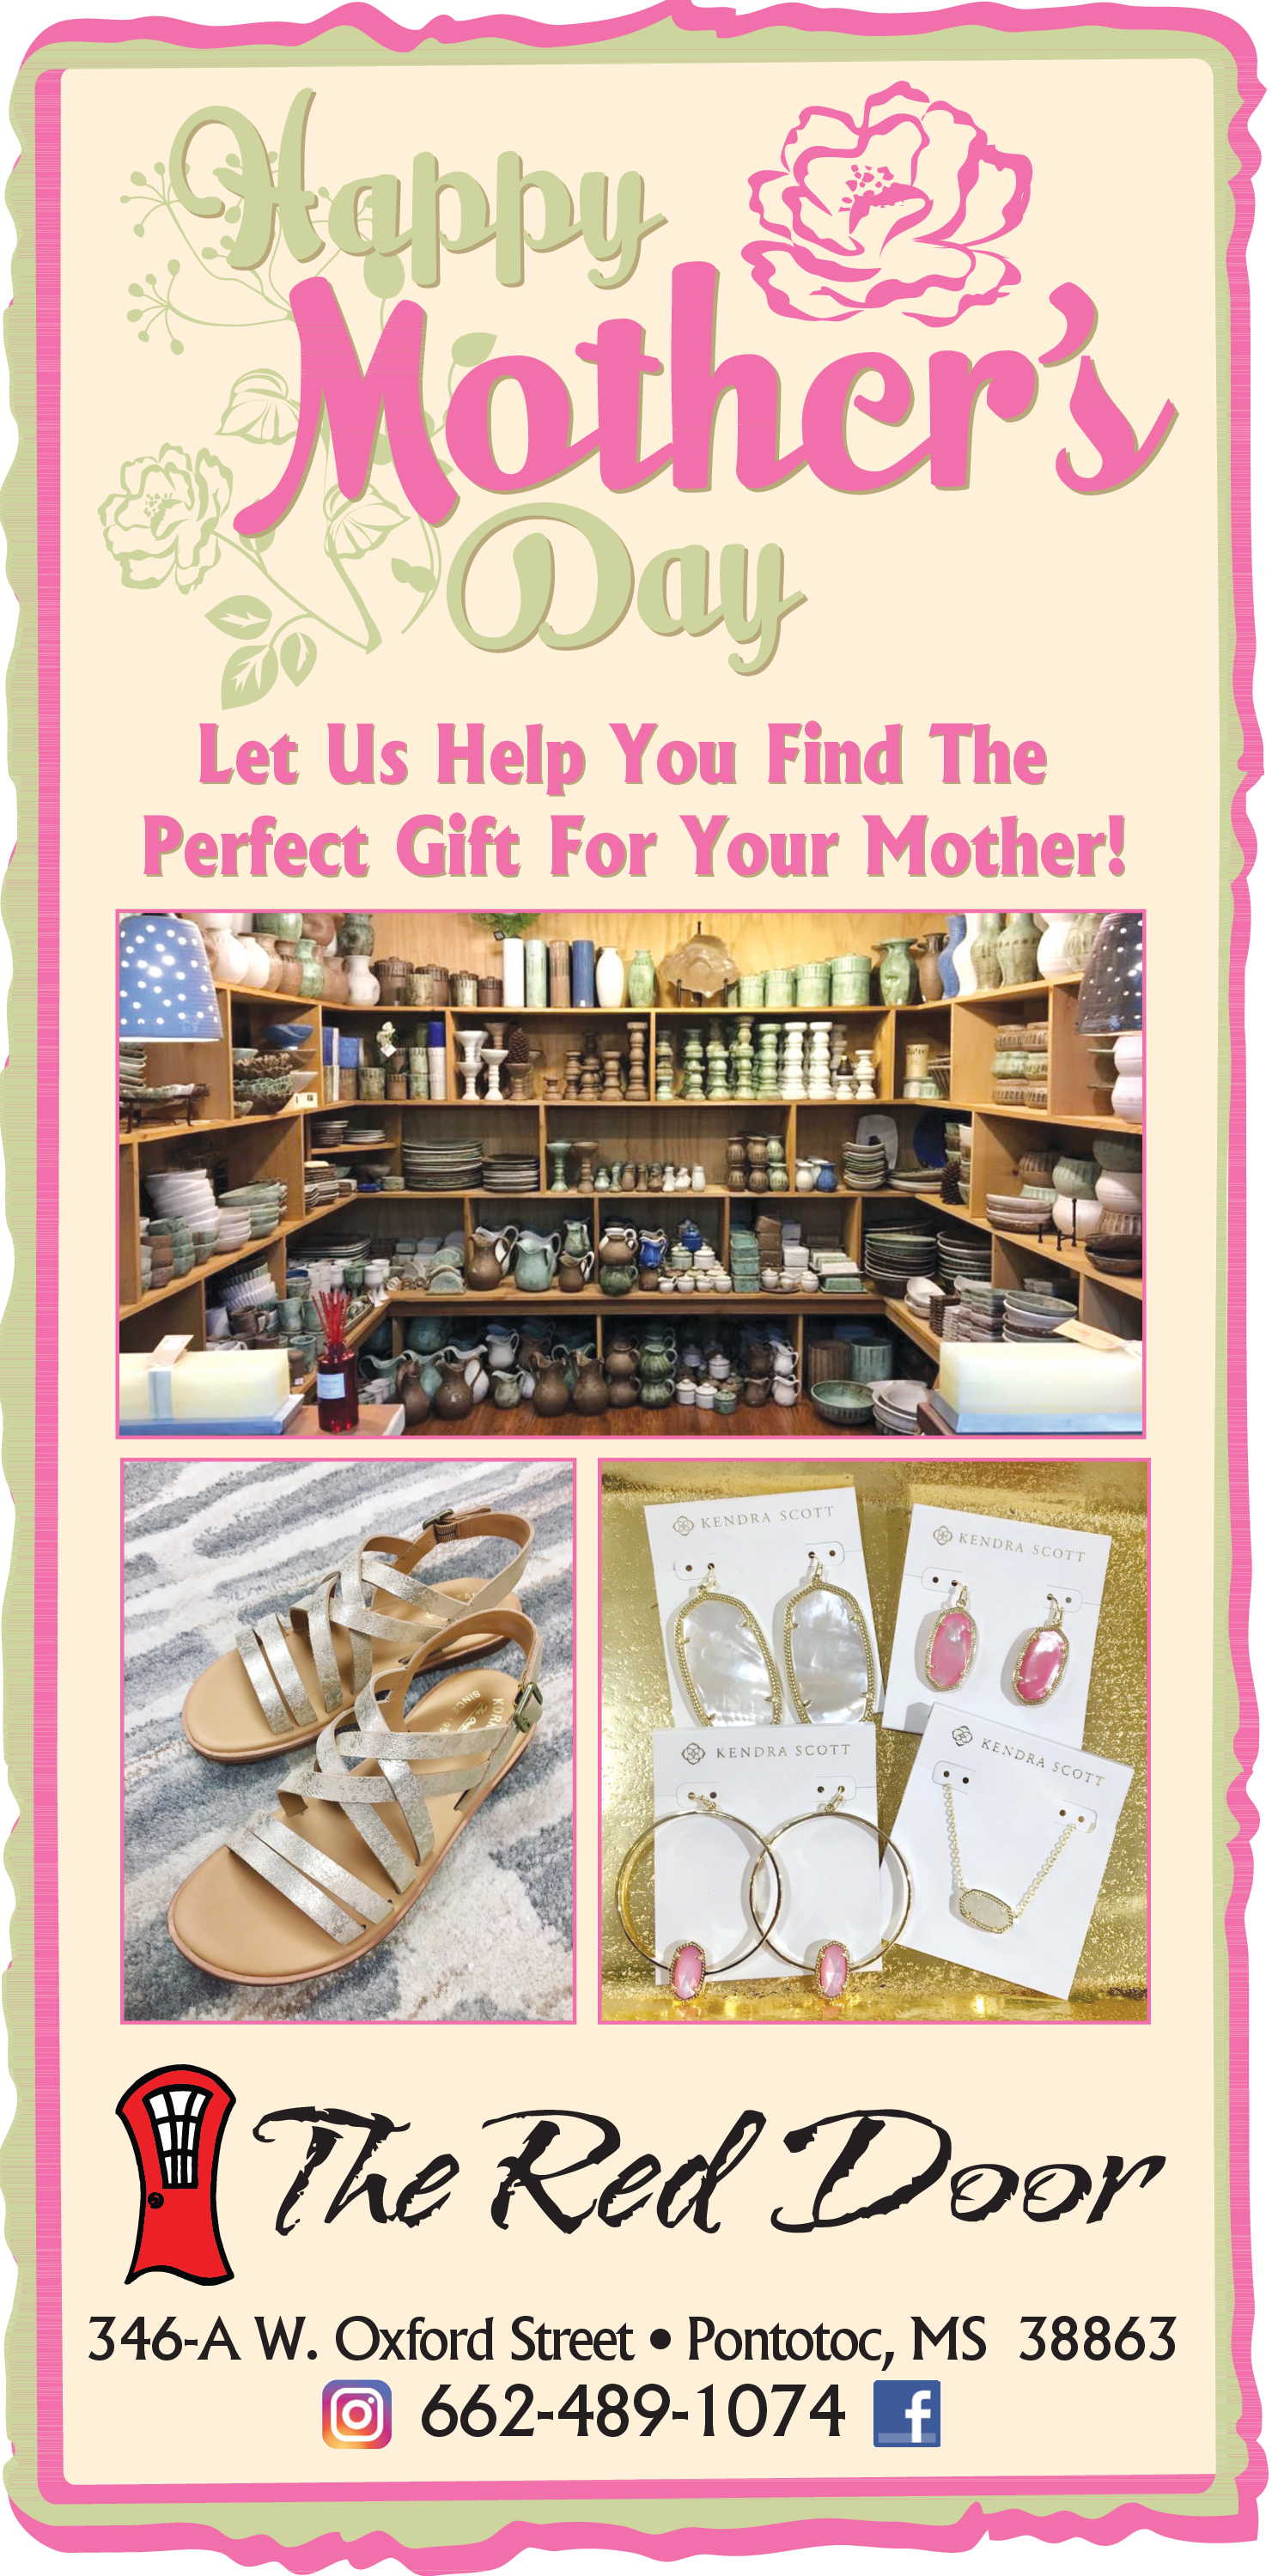 The Perfect Gift For Your Mother In Pontotoc Ms Beauty Shops The